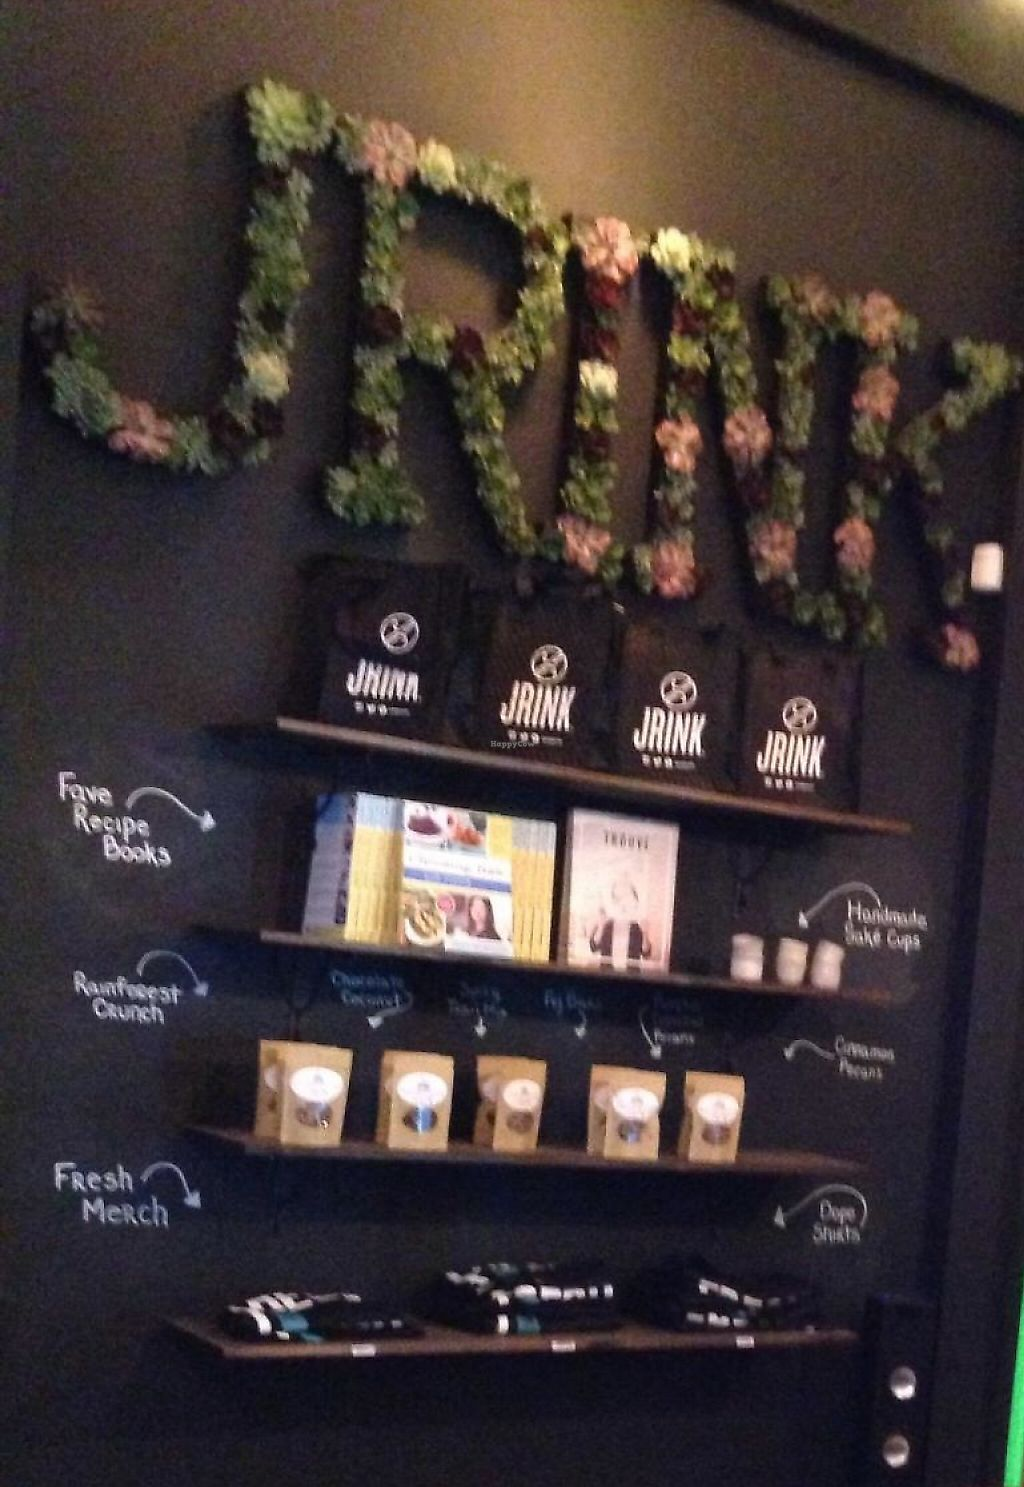 """Photo of Jrink Juicery - 14th St  by <a href=""""/members/profile/cookiem"""">cookiem</a> <br/>Simple decor <br/> April 28, 2015  - <a href='/contact/abuse/image/57278/191527'>Report</a>"""